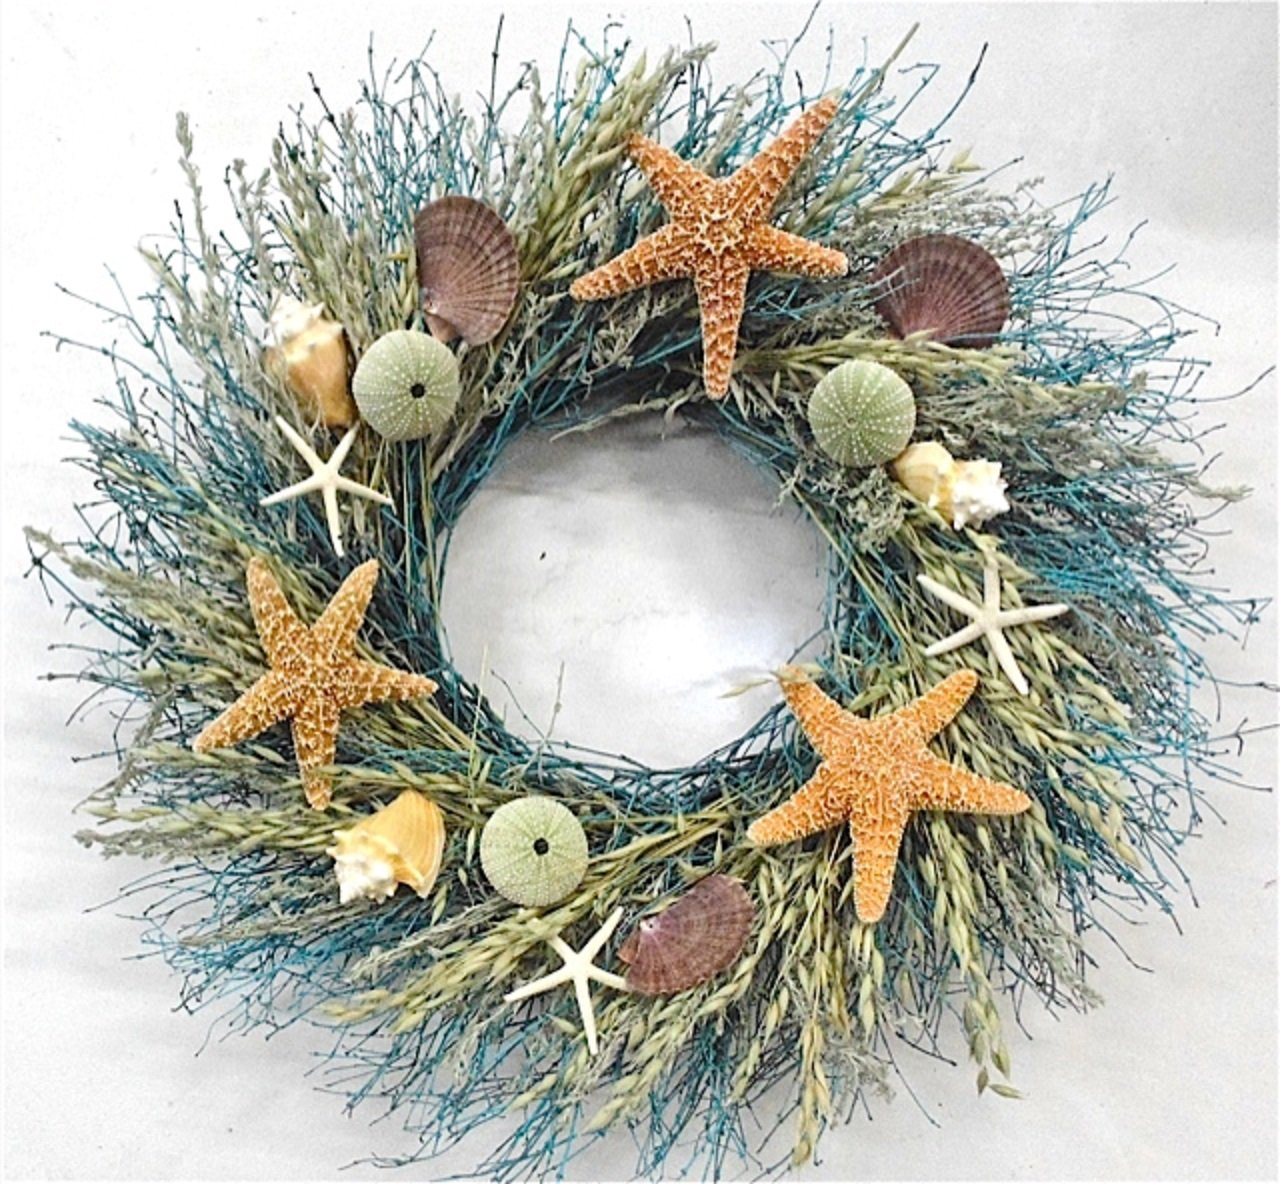 Amazon.com Walk On The Beach Summer Door Wreath Sea Shells Starfish for Coastal Cottage Kitchen Decor Use Indoors or Outdoors Home u0026 Kitchen  sc 1 st  Amazon.com & Amazon.com: Walk On The Beach Summer Door Wreath Sea Shells Starfish ...